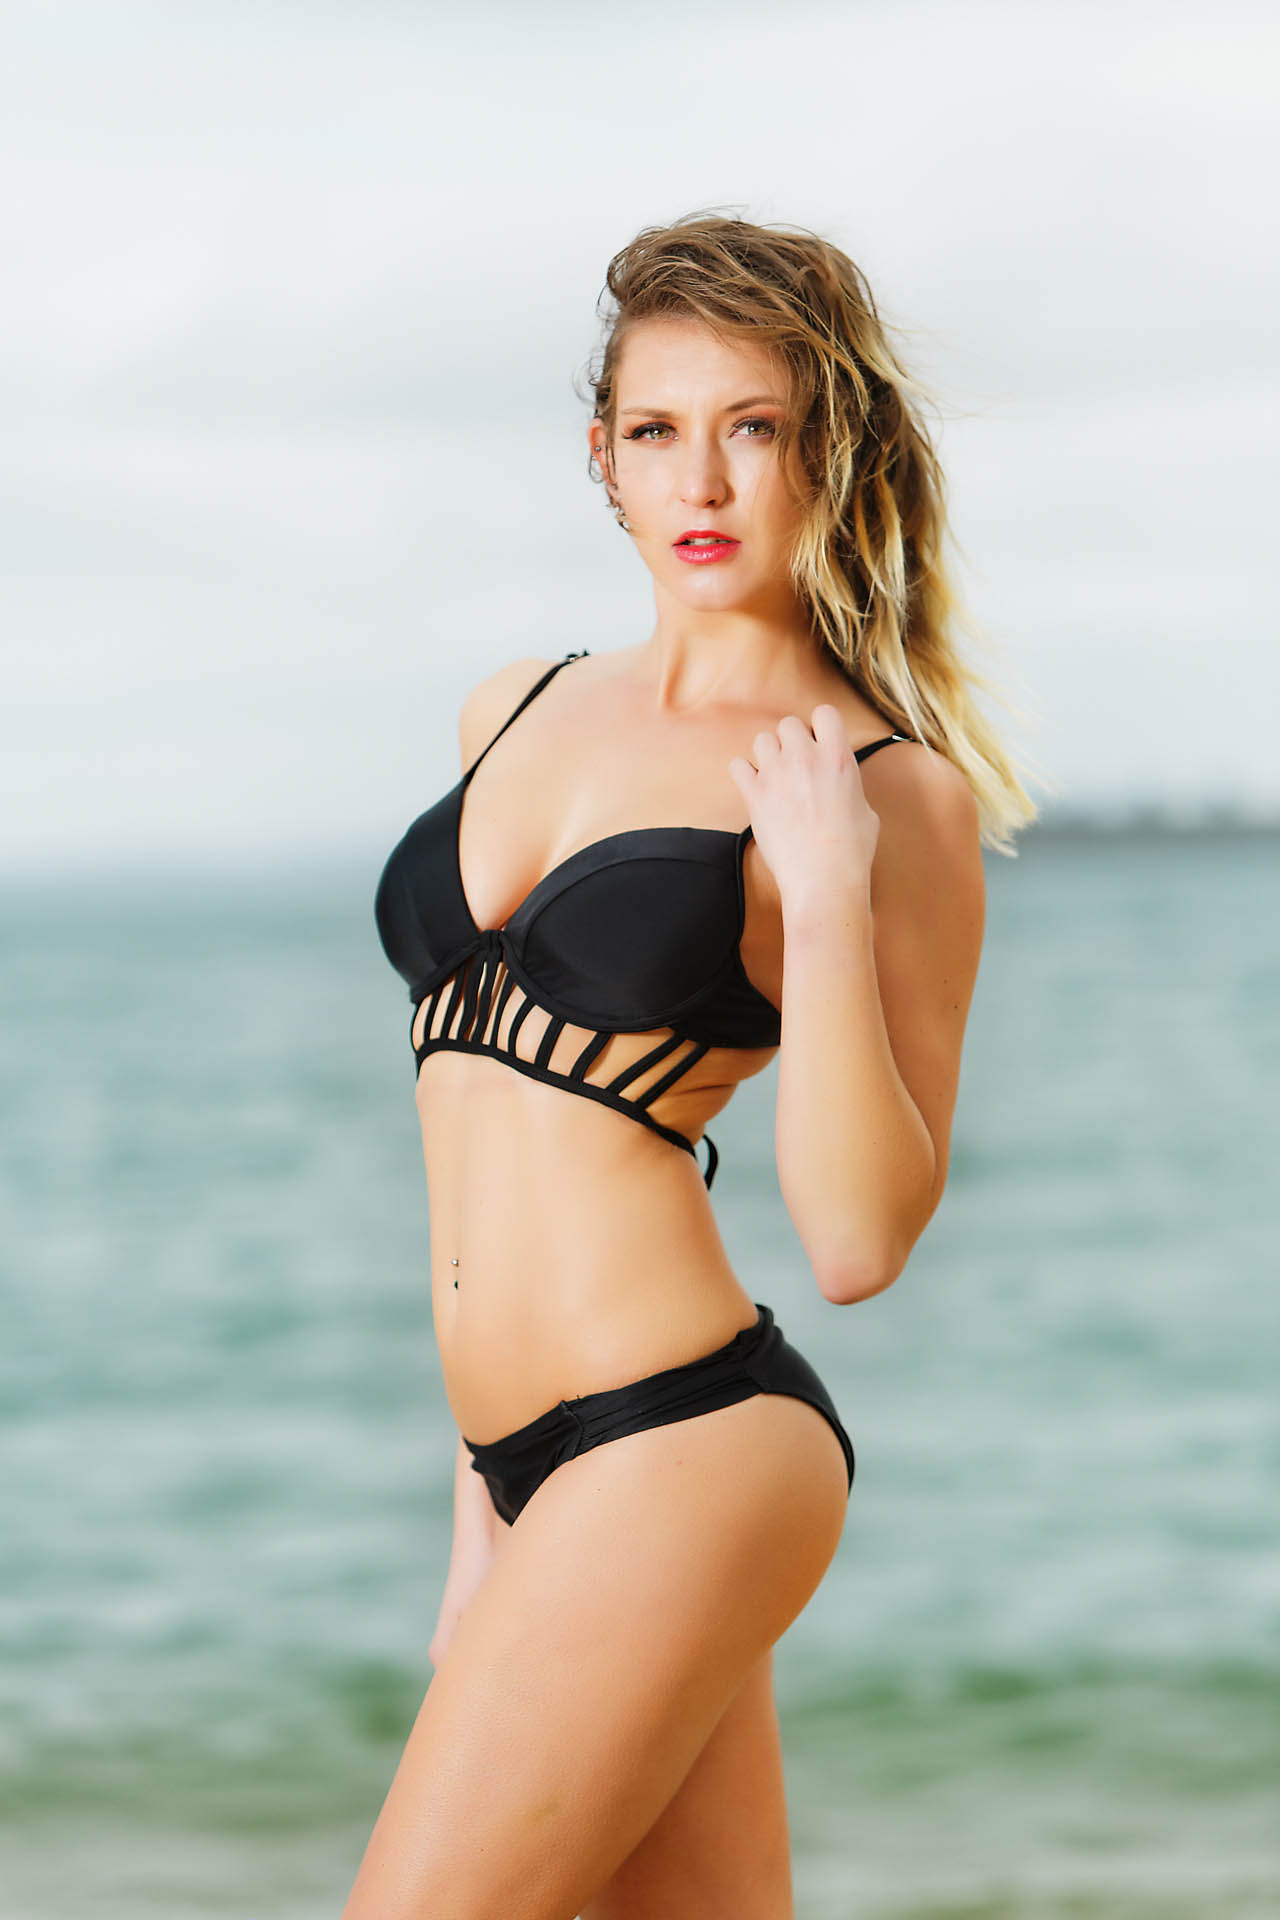 Swimwear Location Shoot with Em Maguire. Hair and makeup by Mariam Fleur Baraka.    Photography by Chris David @chrisdavidphoto